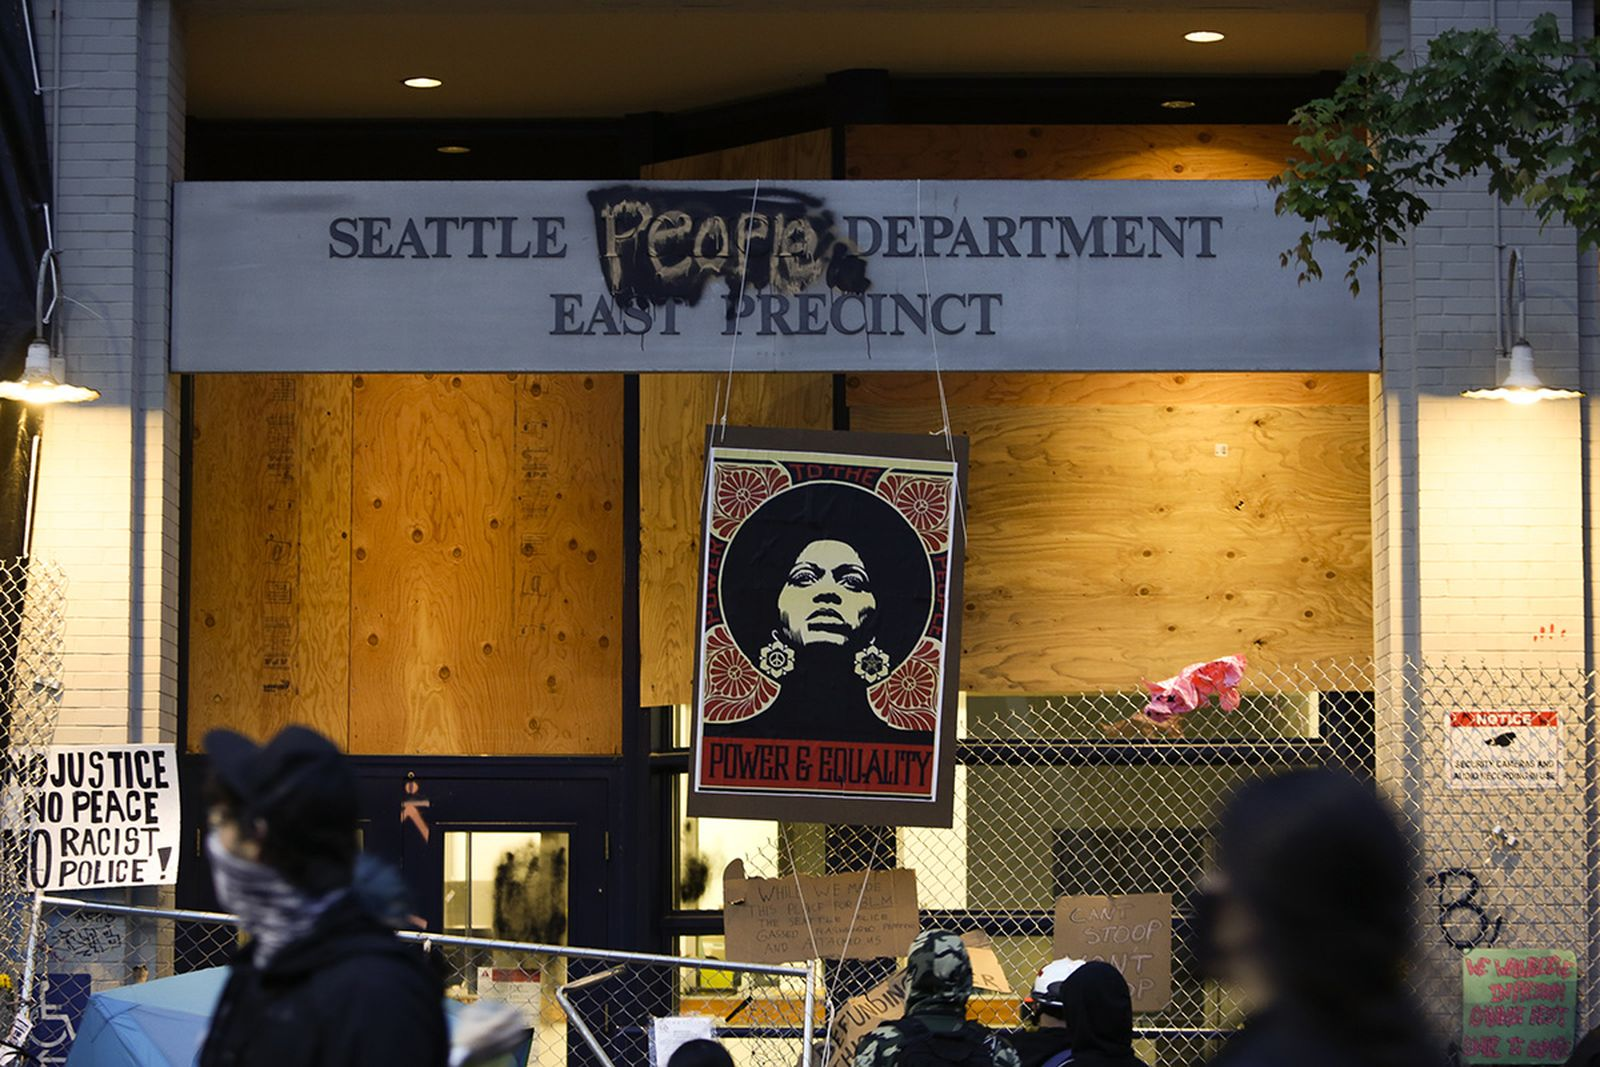 An image of activist Angela Davis is displayed above the entrance to the Seattle Police Department